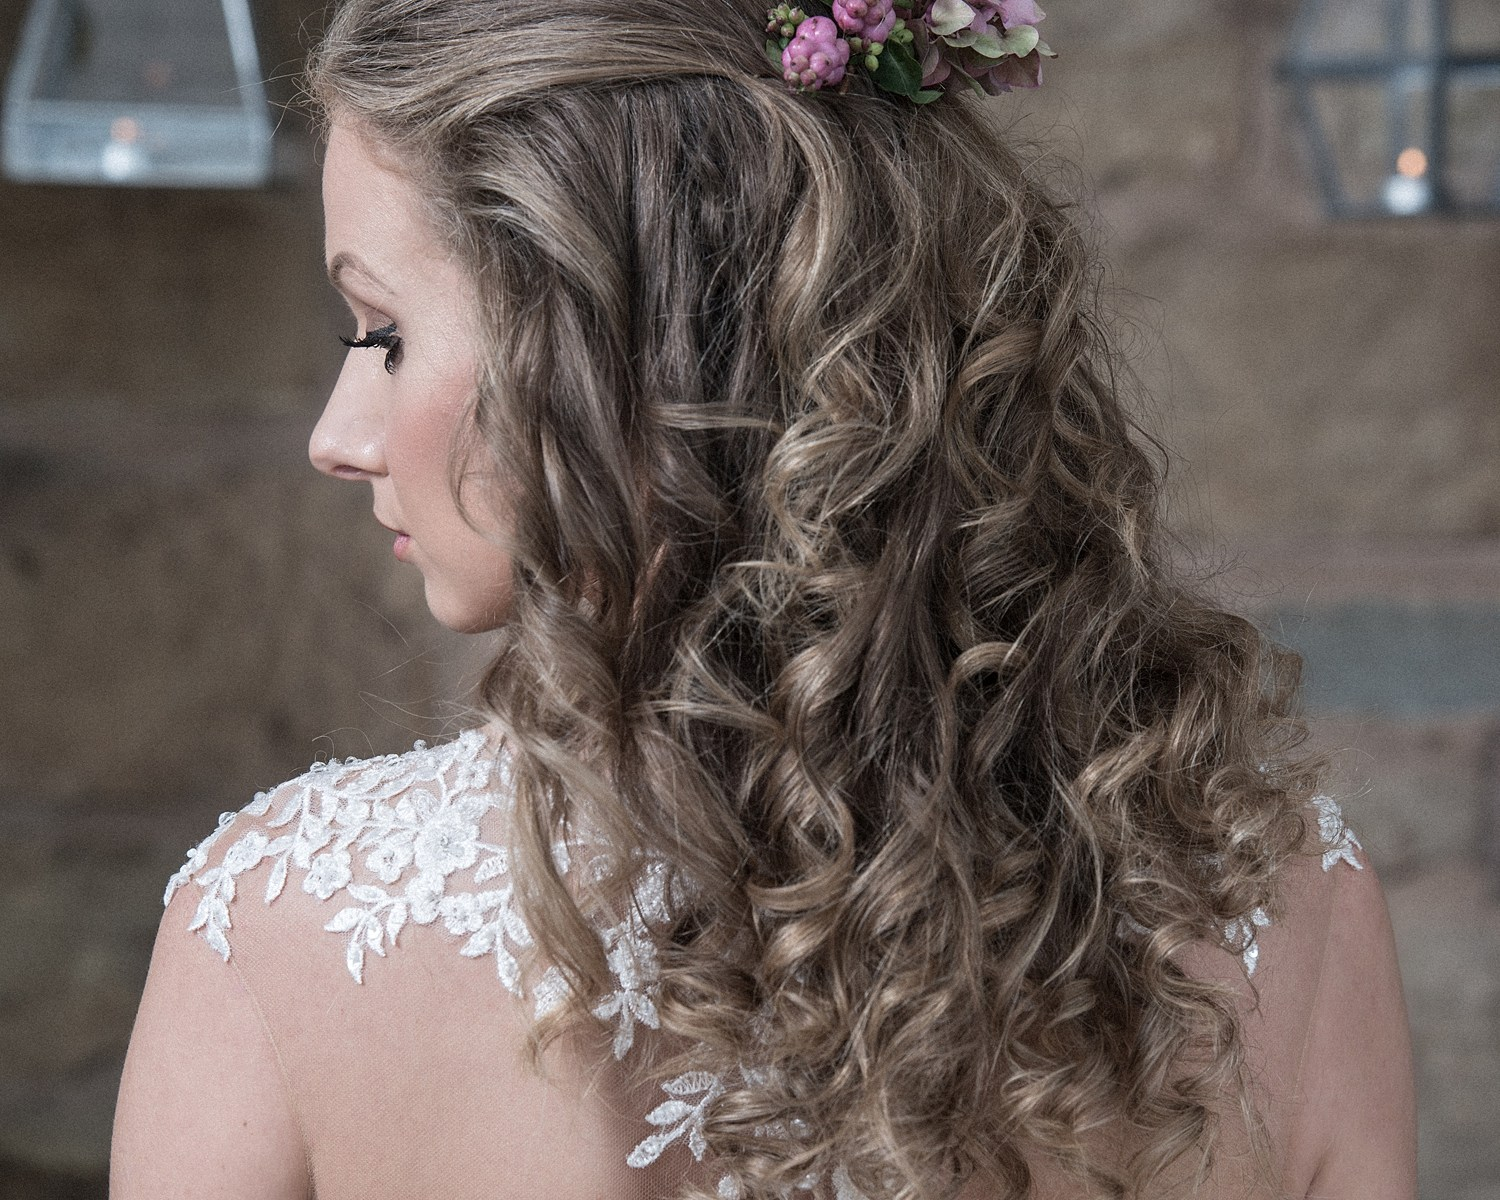 Bridal boho hair with flowers